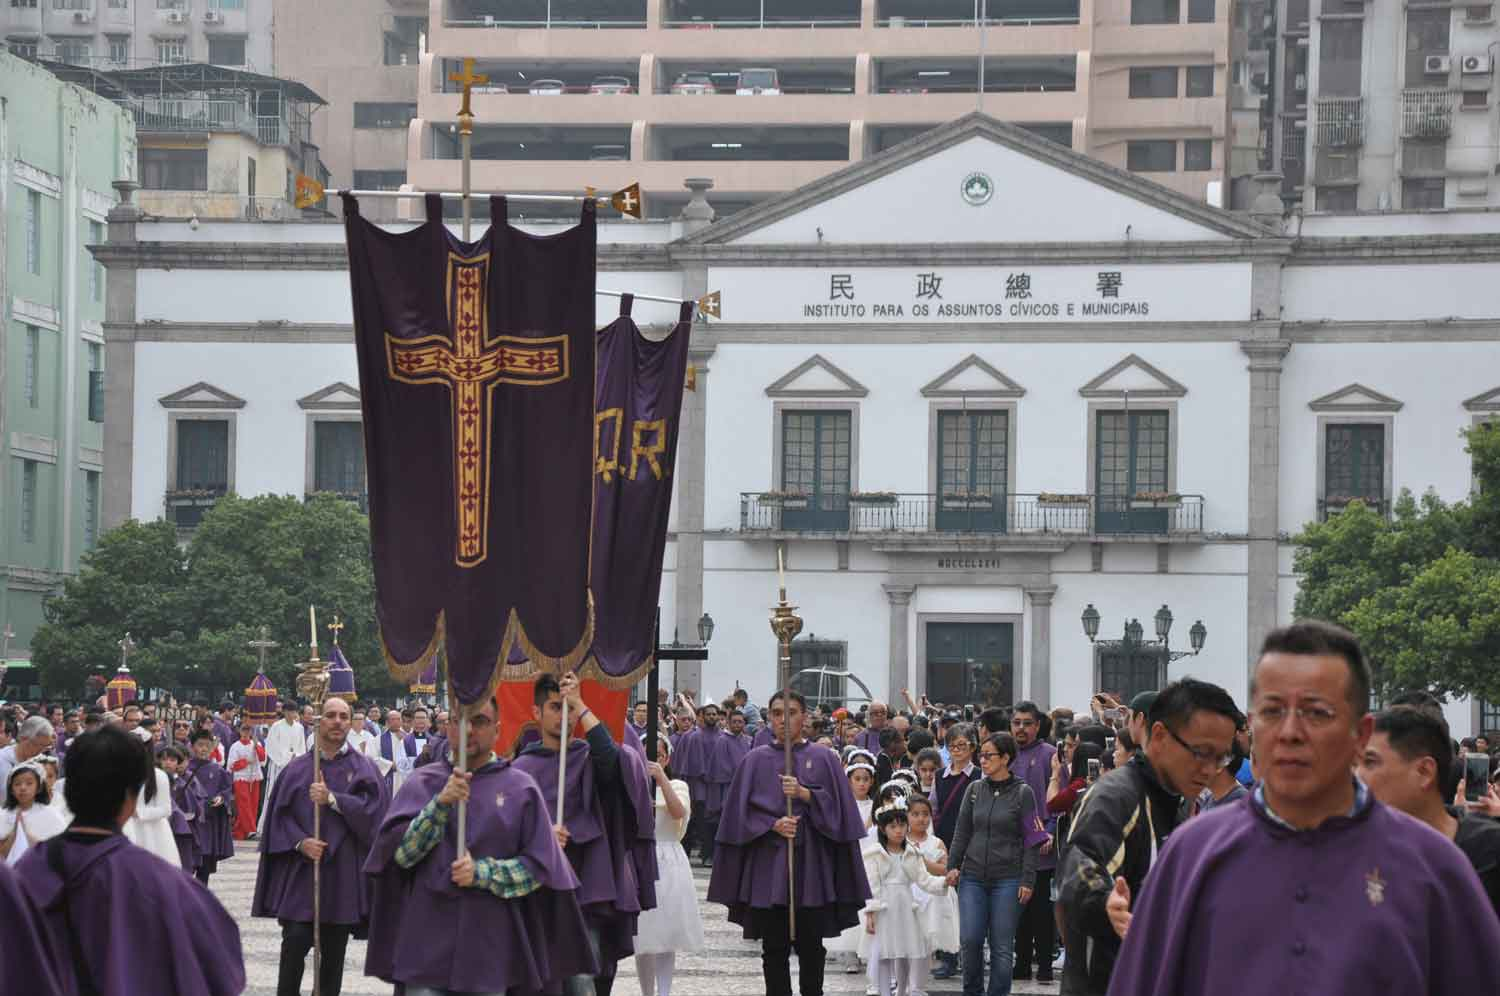 Procession of the Passion of Our Lord, the God Jesus